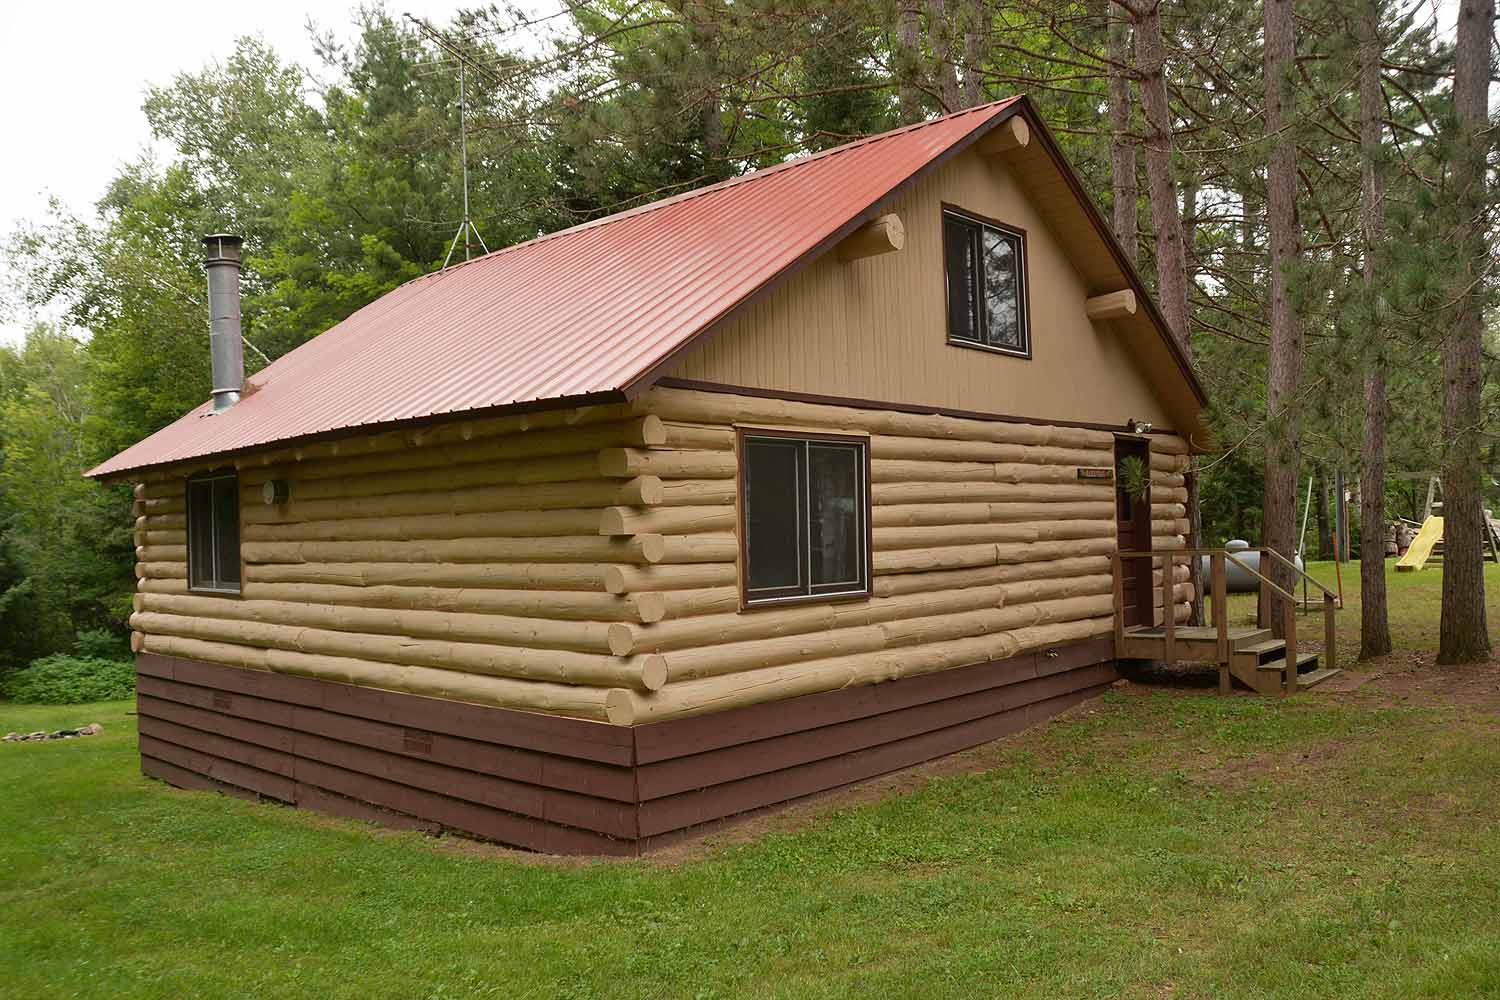 Lake view log cabin rental clam lake wisconsin clam for Cabin rentals wi